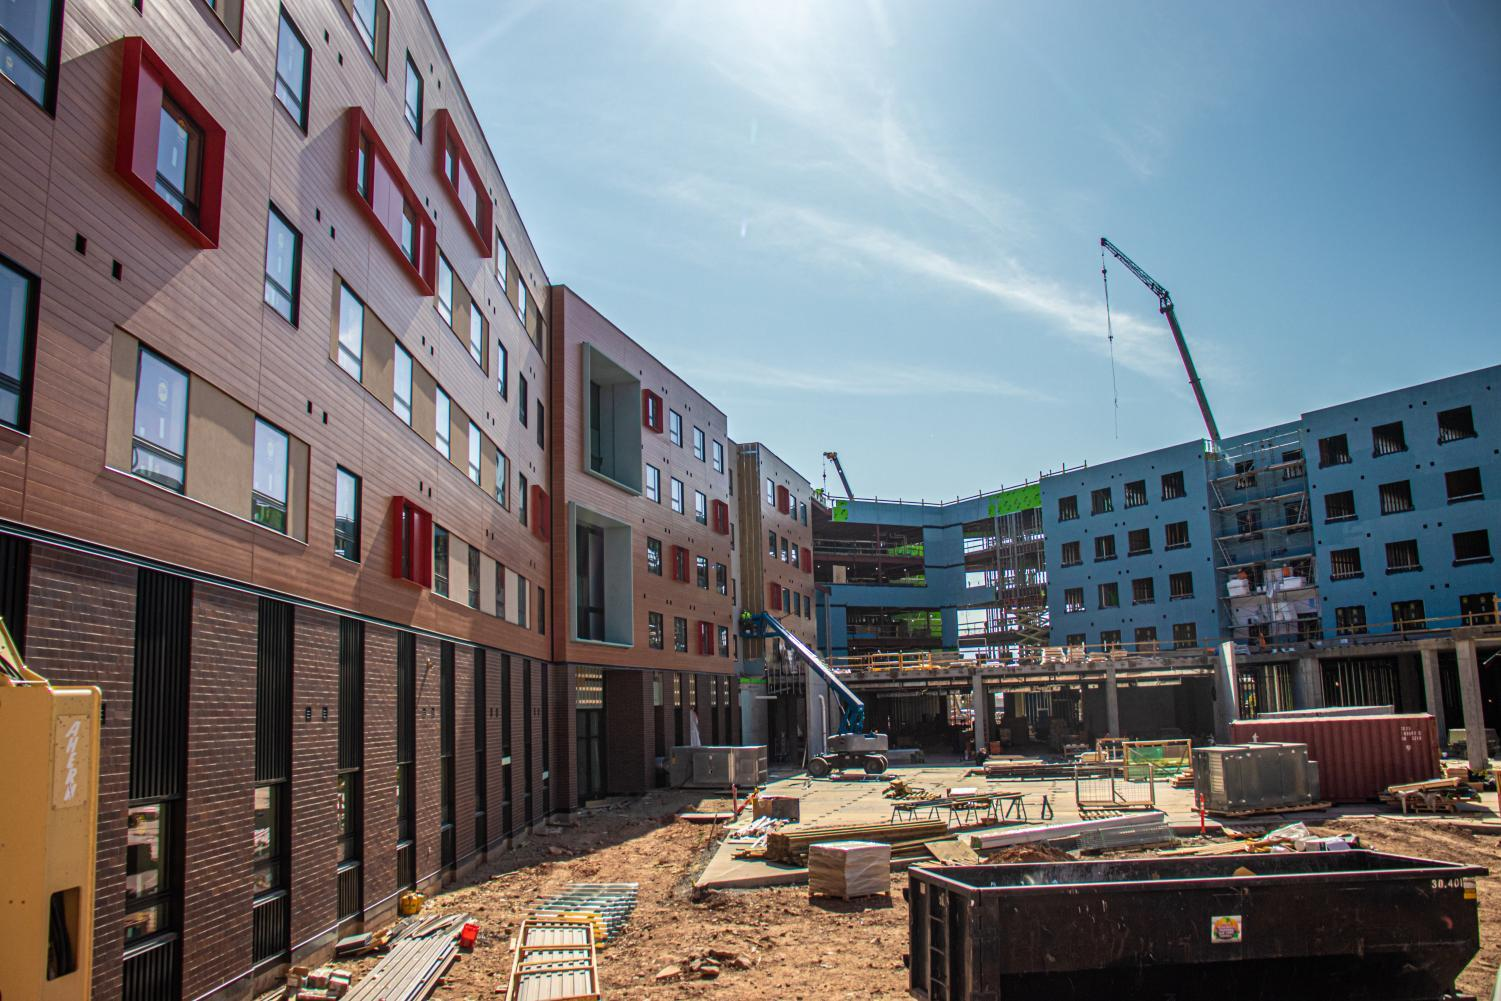 The in-construction Kahert Village Residence Dorms, University of Utah Campus, Salt Lake City, UT on Monday, October 14th, 2019. (Photo by Mark Draper | The Daily Utah Chronicle)